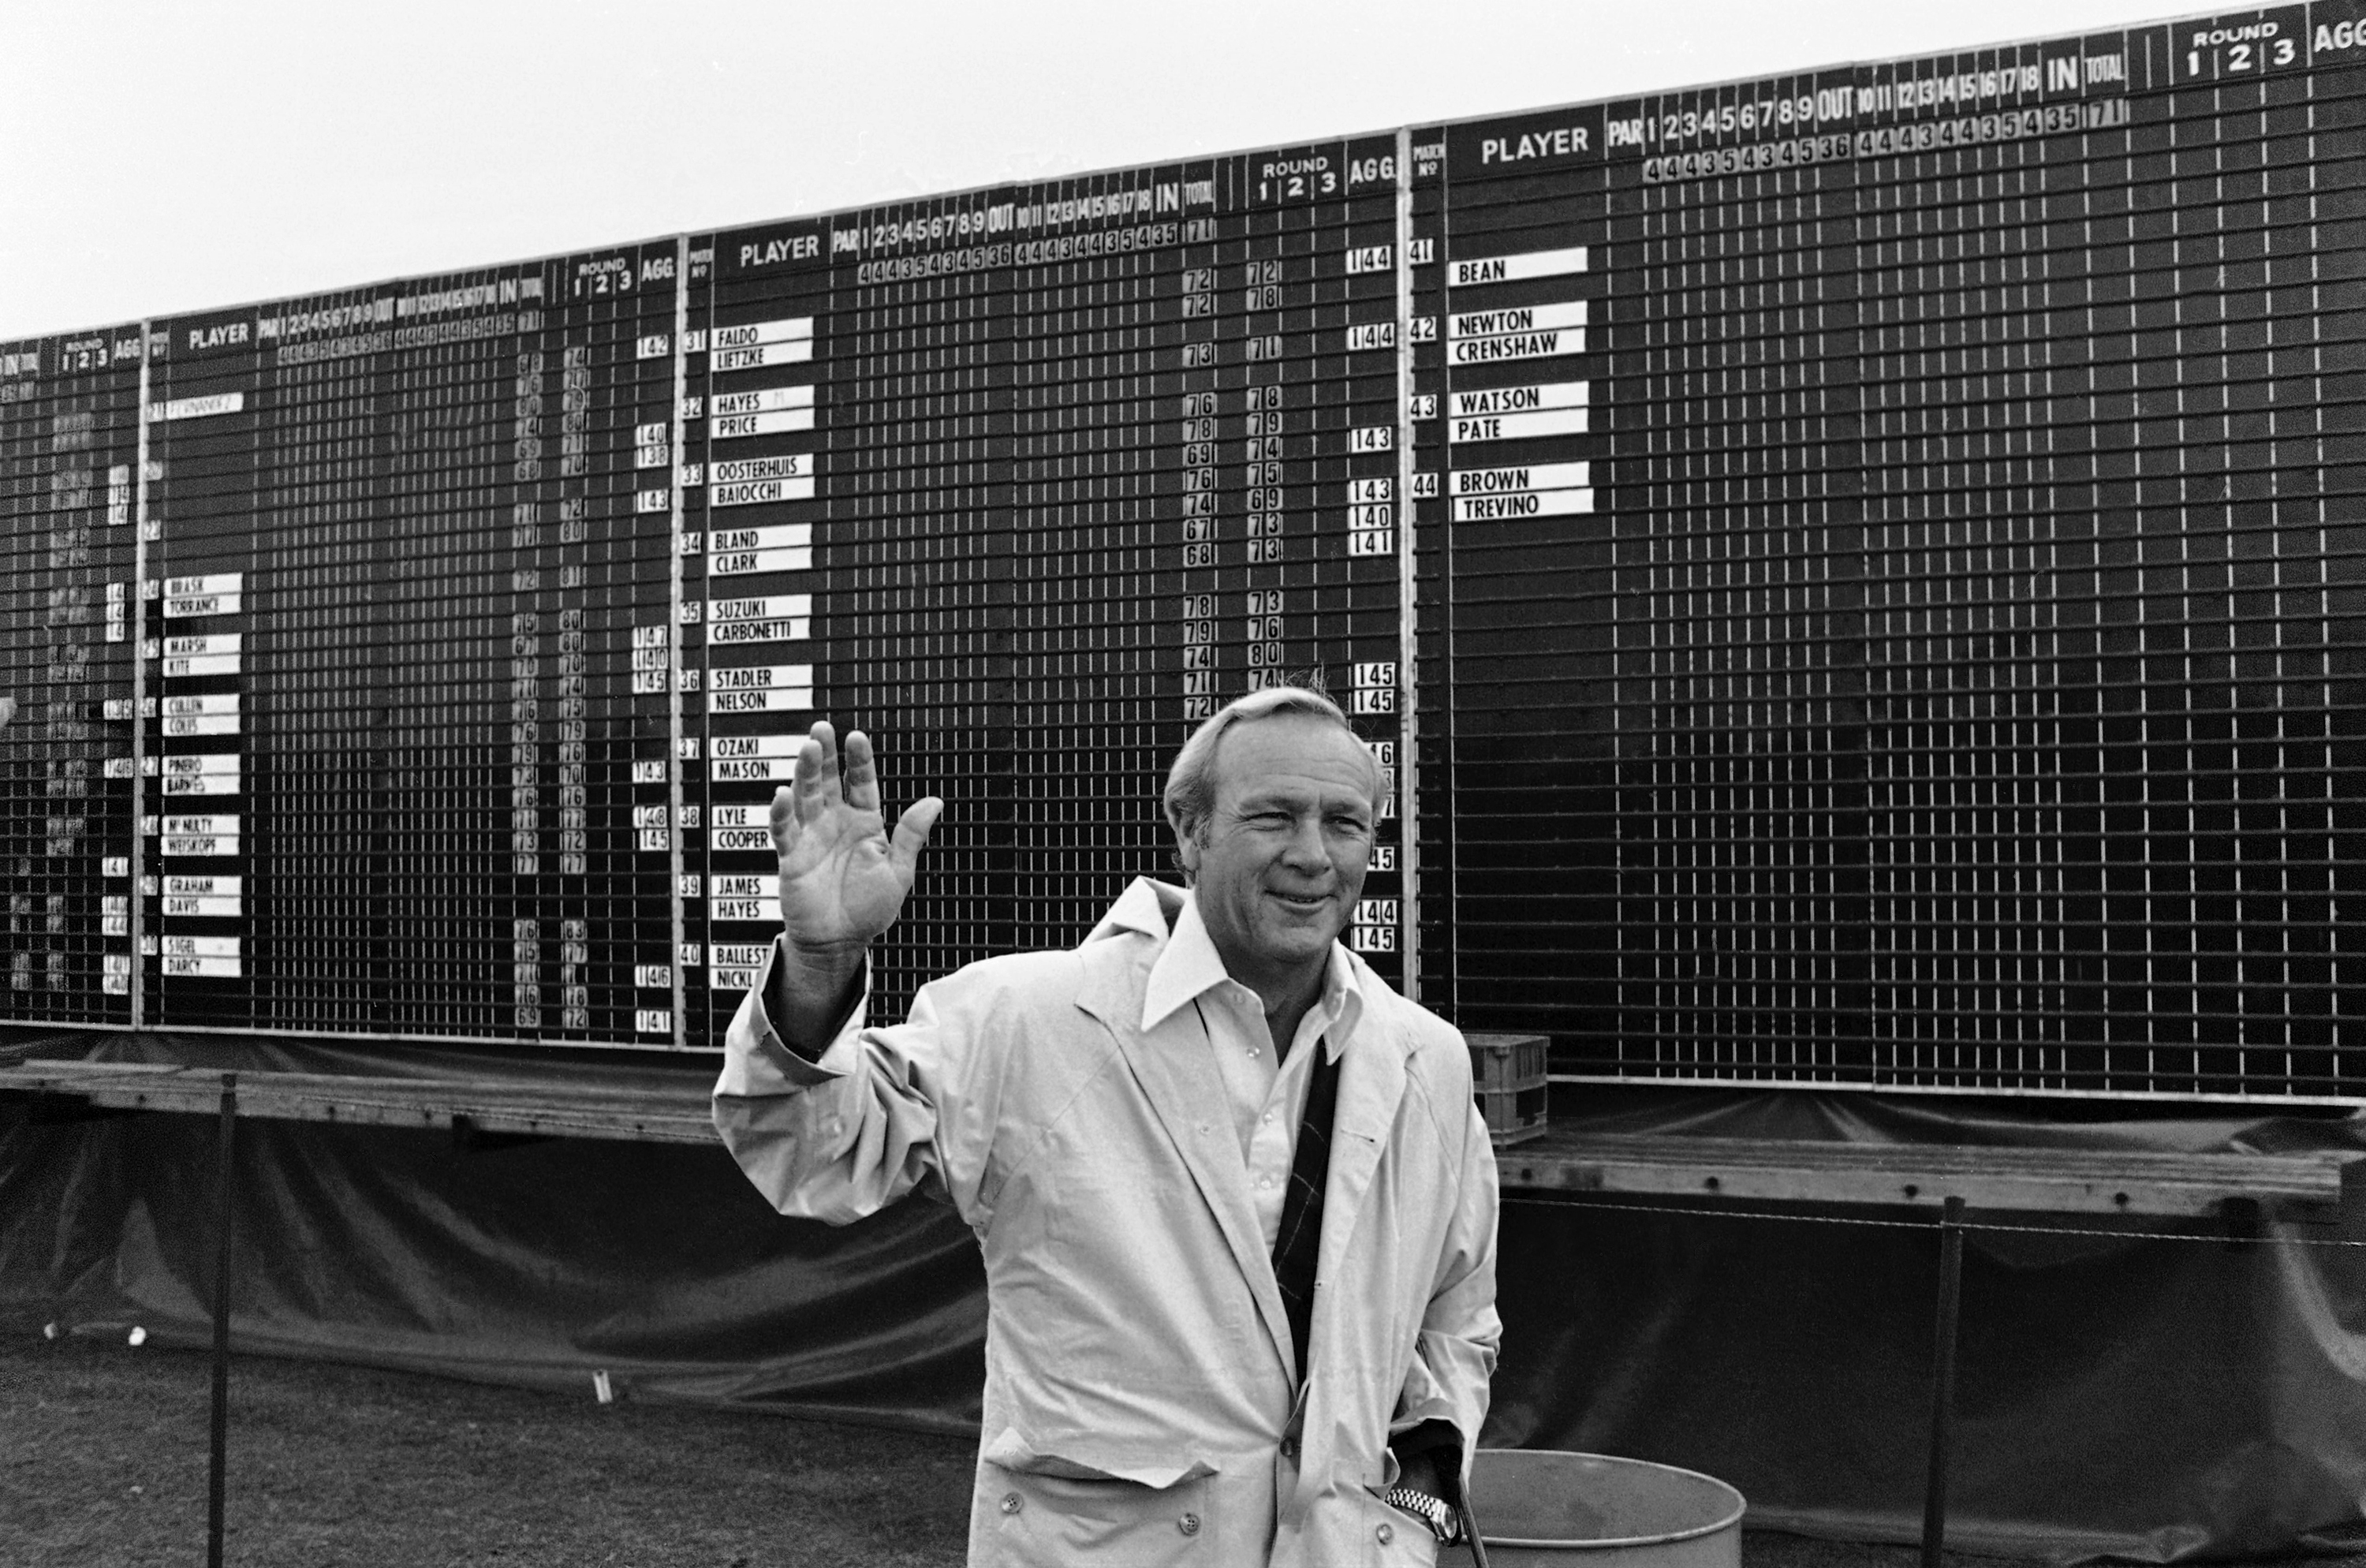 Arnold Palmer announced his retirement from playing the Open Golf Championship on the penultimate day of the championship at Muirfield, Scotland, July 19, 1980.